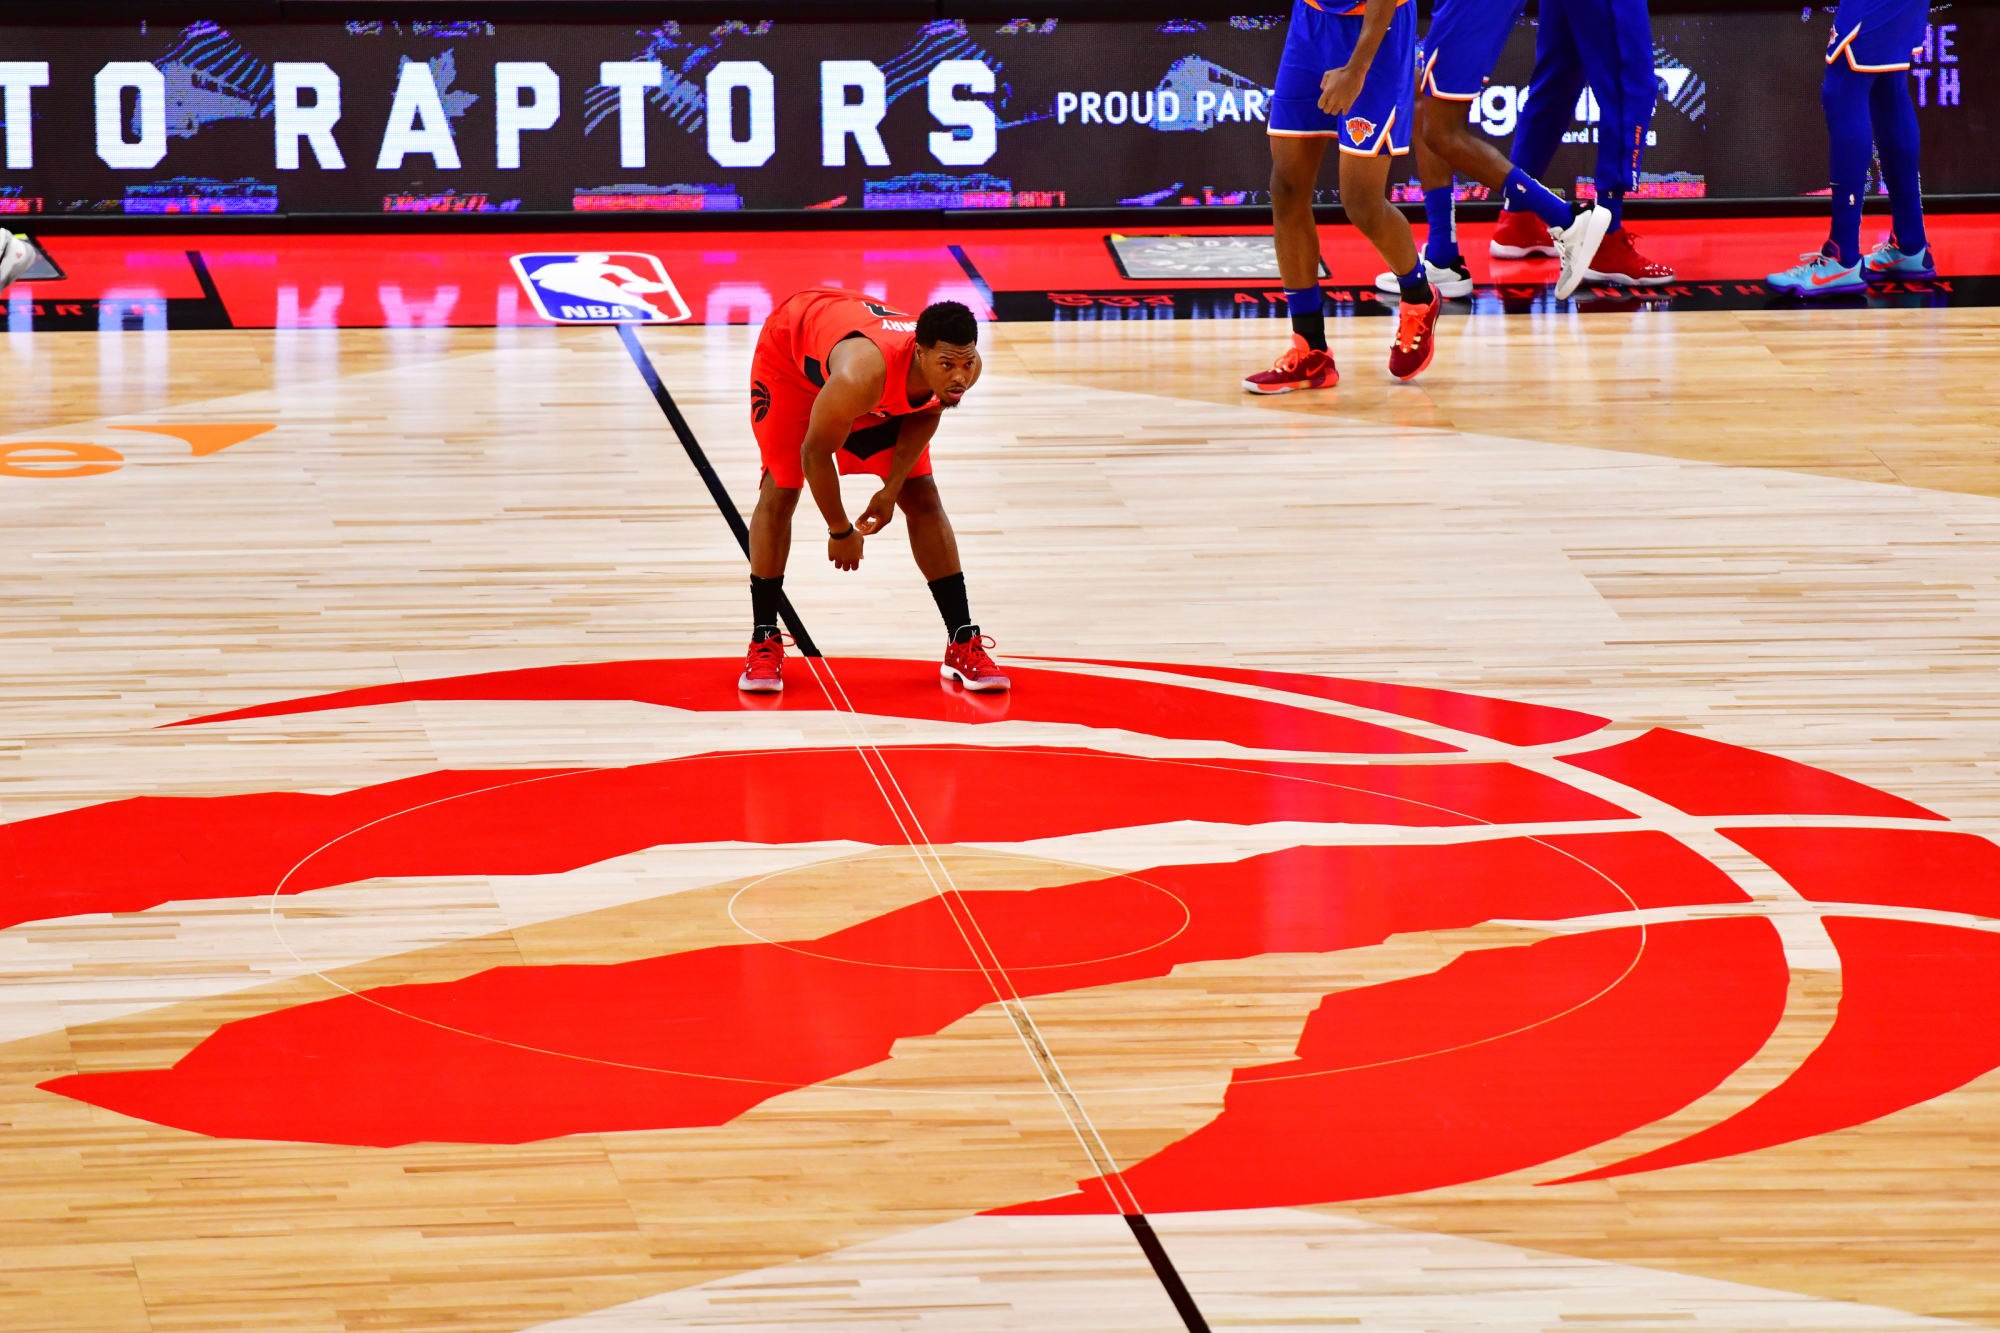 Toronto Raptors: Which player should be taking the last shot?